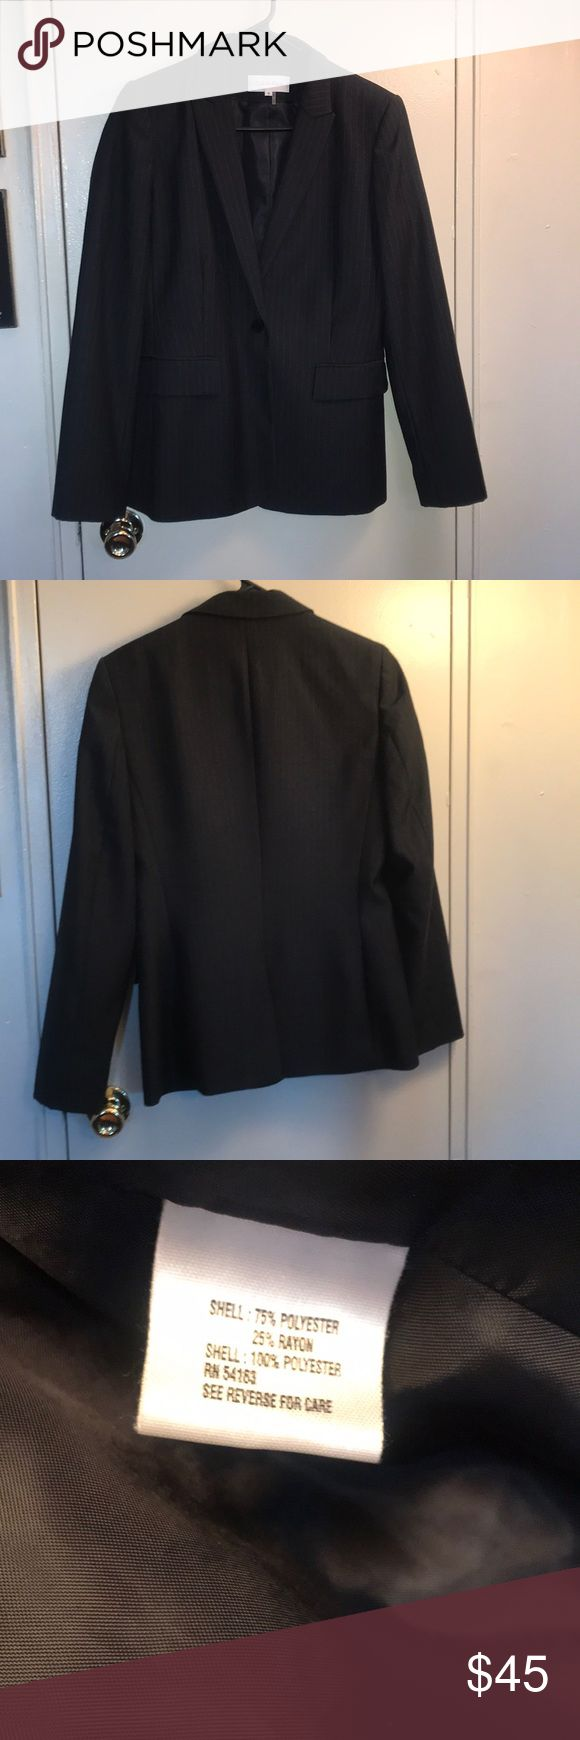 Calvin Klein dark grey pin stripe suit jacket Women's Calvin Klein dark grey pin stripe suit jacket. Worn once for an interview, Dry cleaned and never wore it again (I got the job and office is business casual lol) size 8. I also have matching pants (size 10, never worn) and matching skirt, size 8 (worn once and dry cleaned) check my other listings and bundle to save more! Calvin Klein Jackets & Coats Blazers